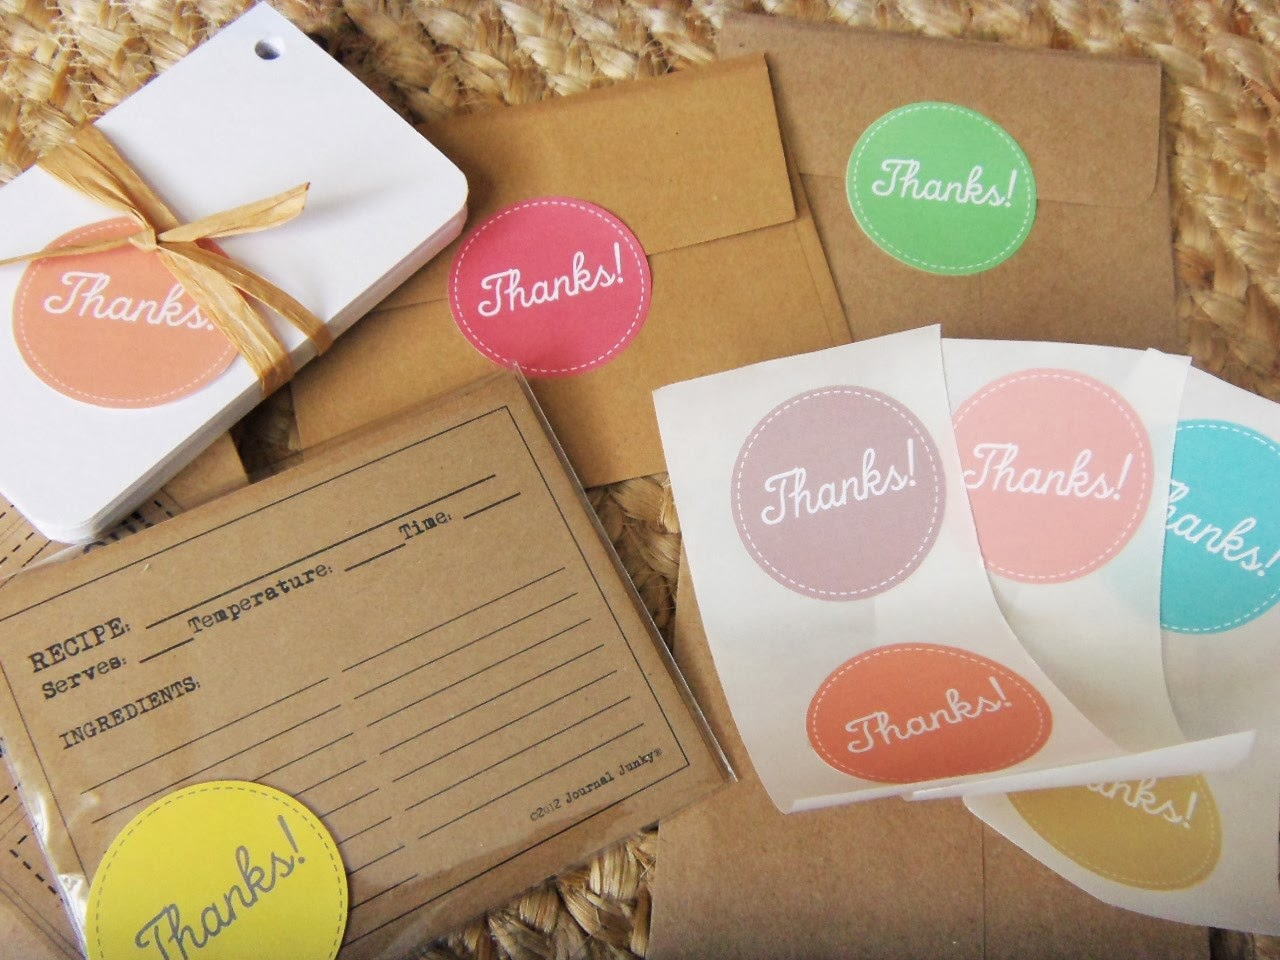 https://www.etsy.com/listing/92583026/round-thank-you-stickers-2-inchespastel?ref=shop_home_feat_1